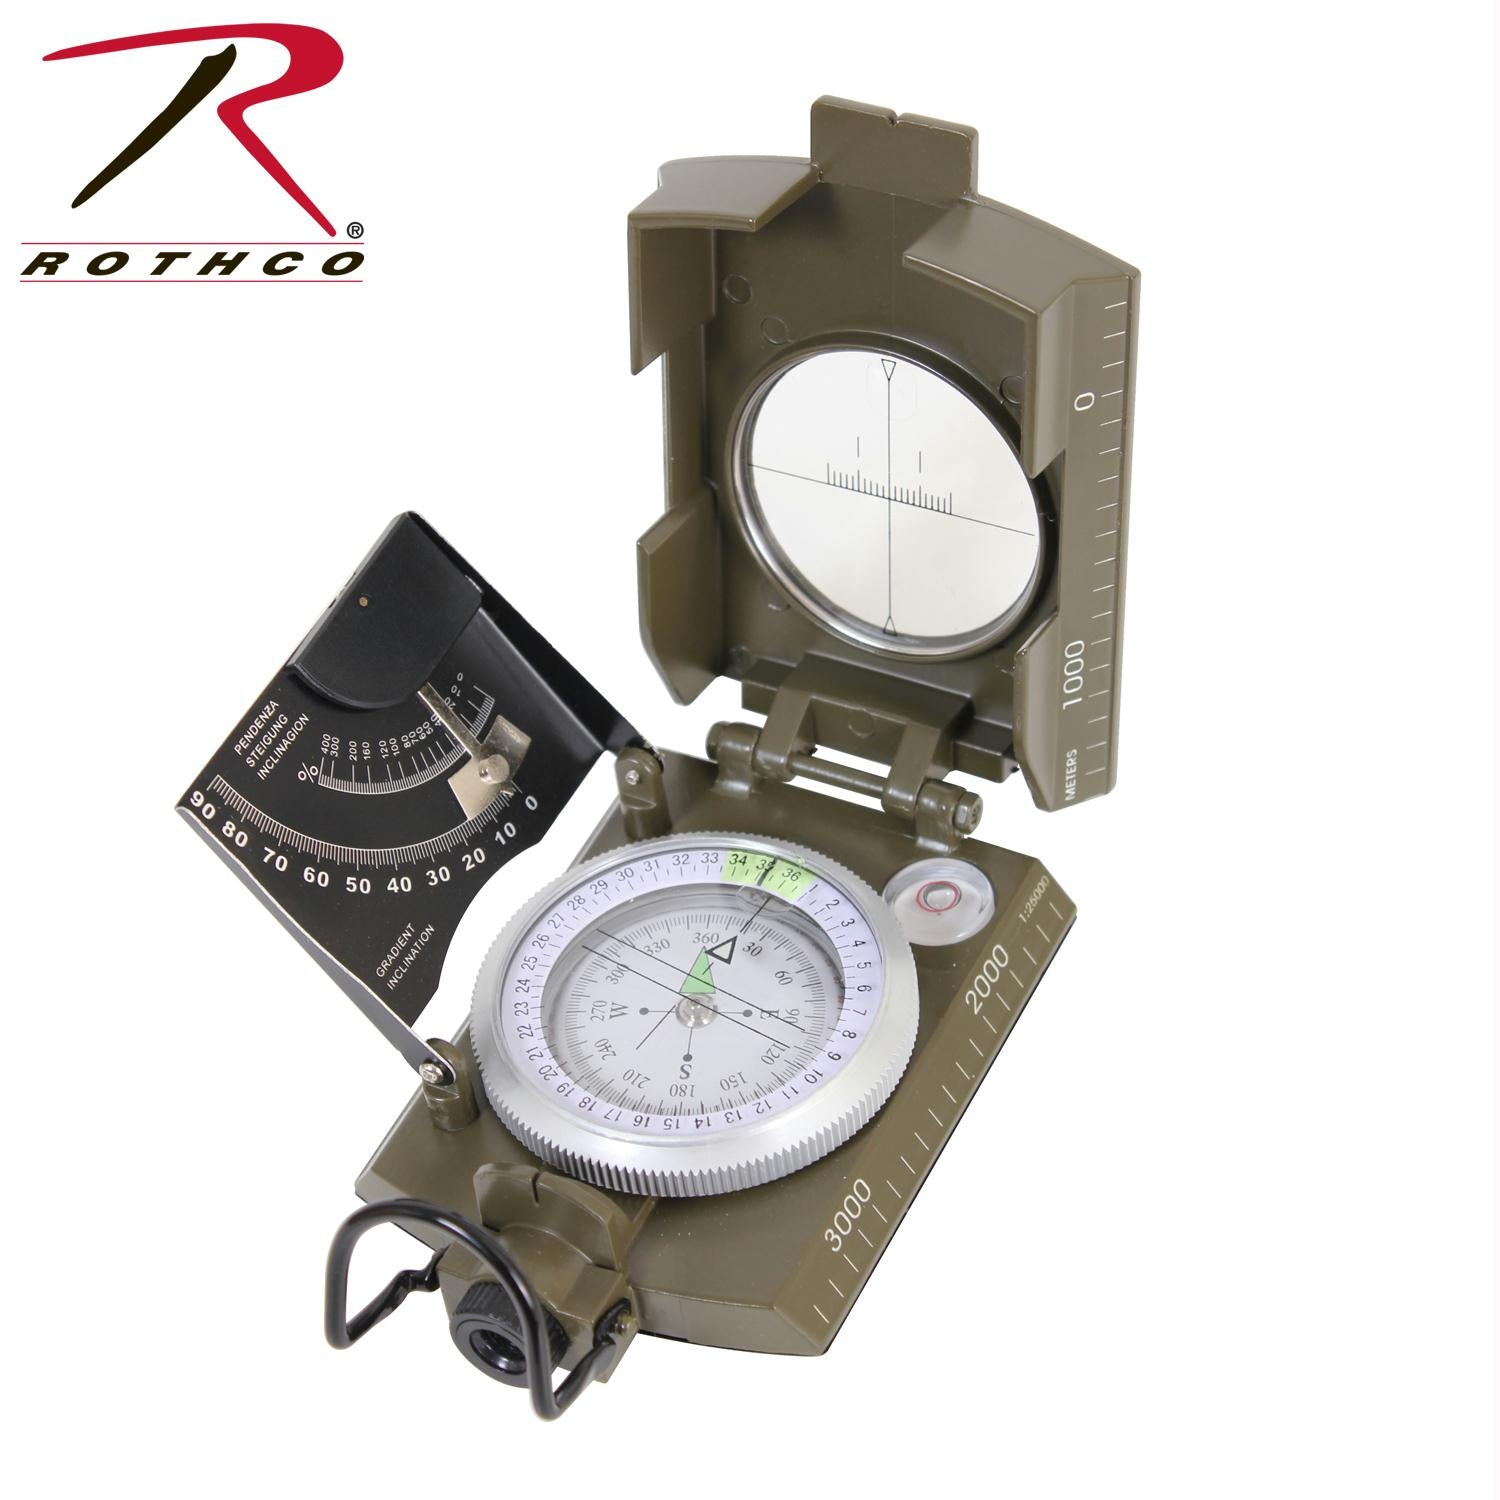 Rothco Deluxe Marching Compass - Olive Drab